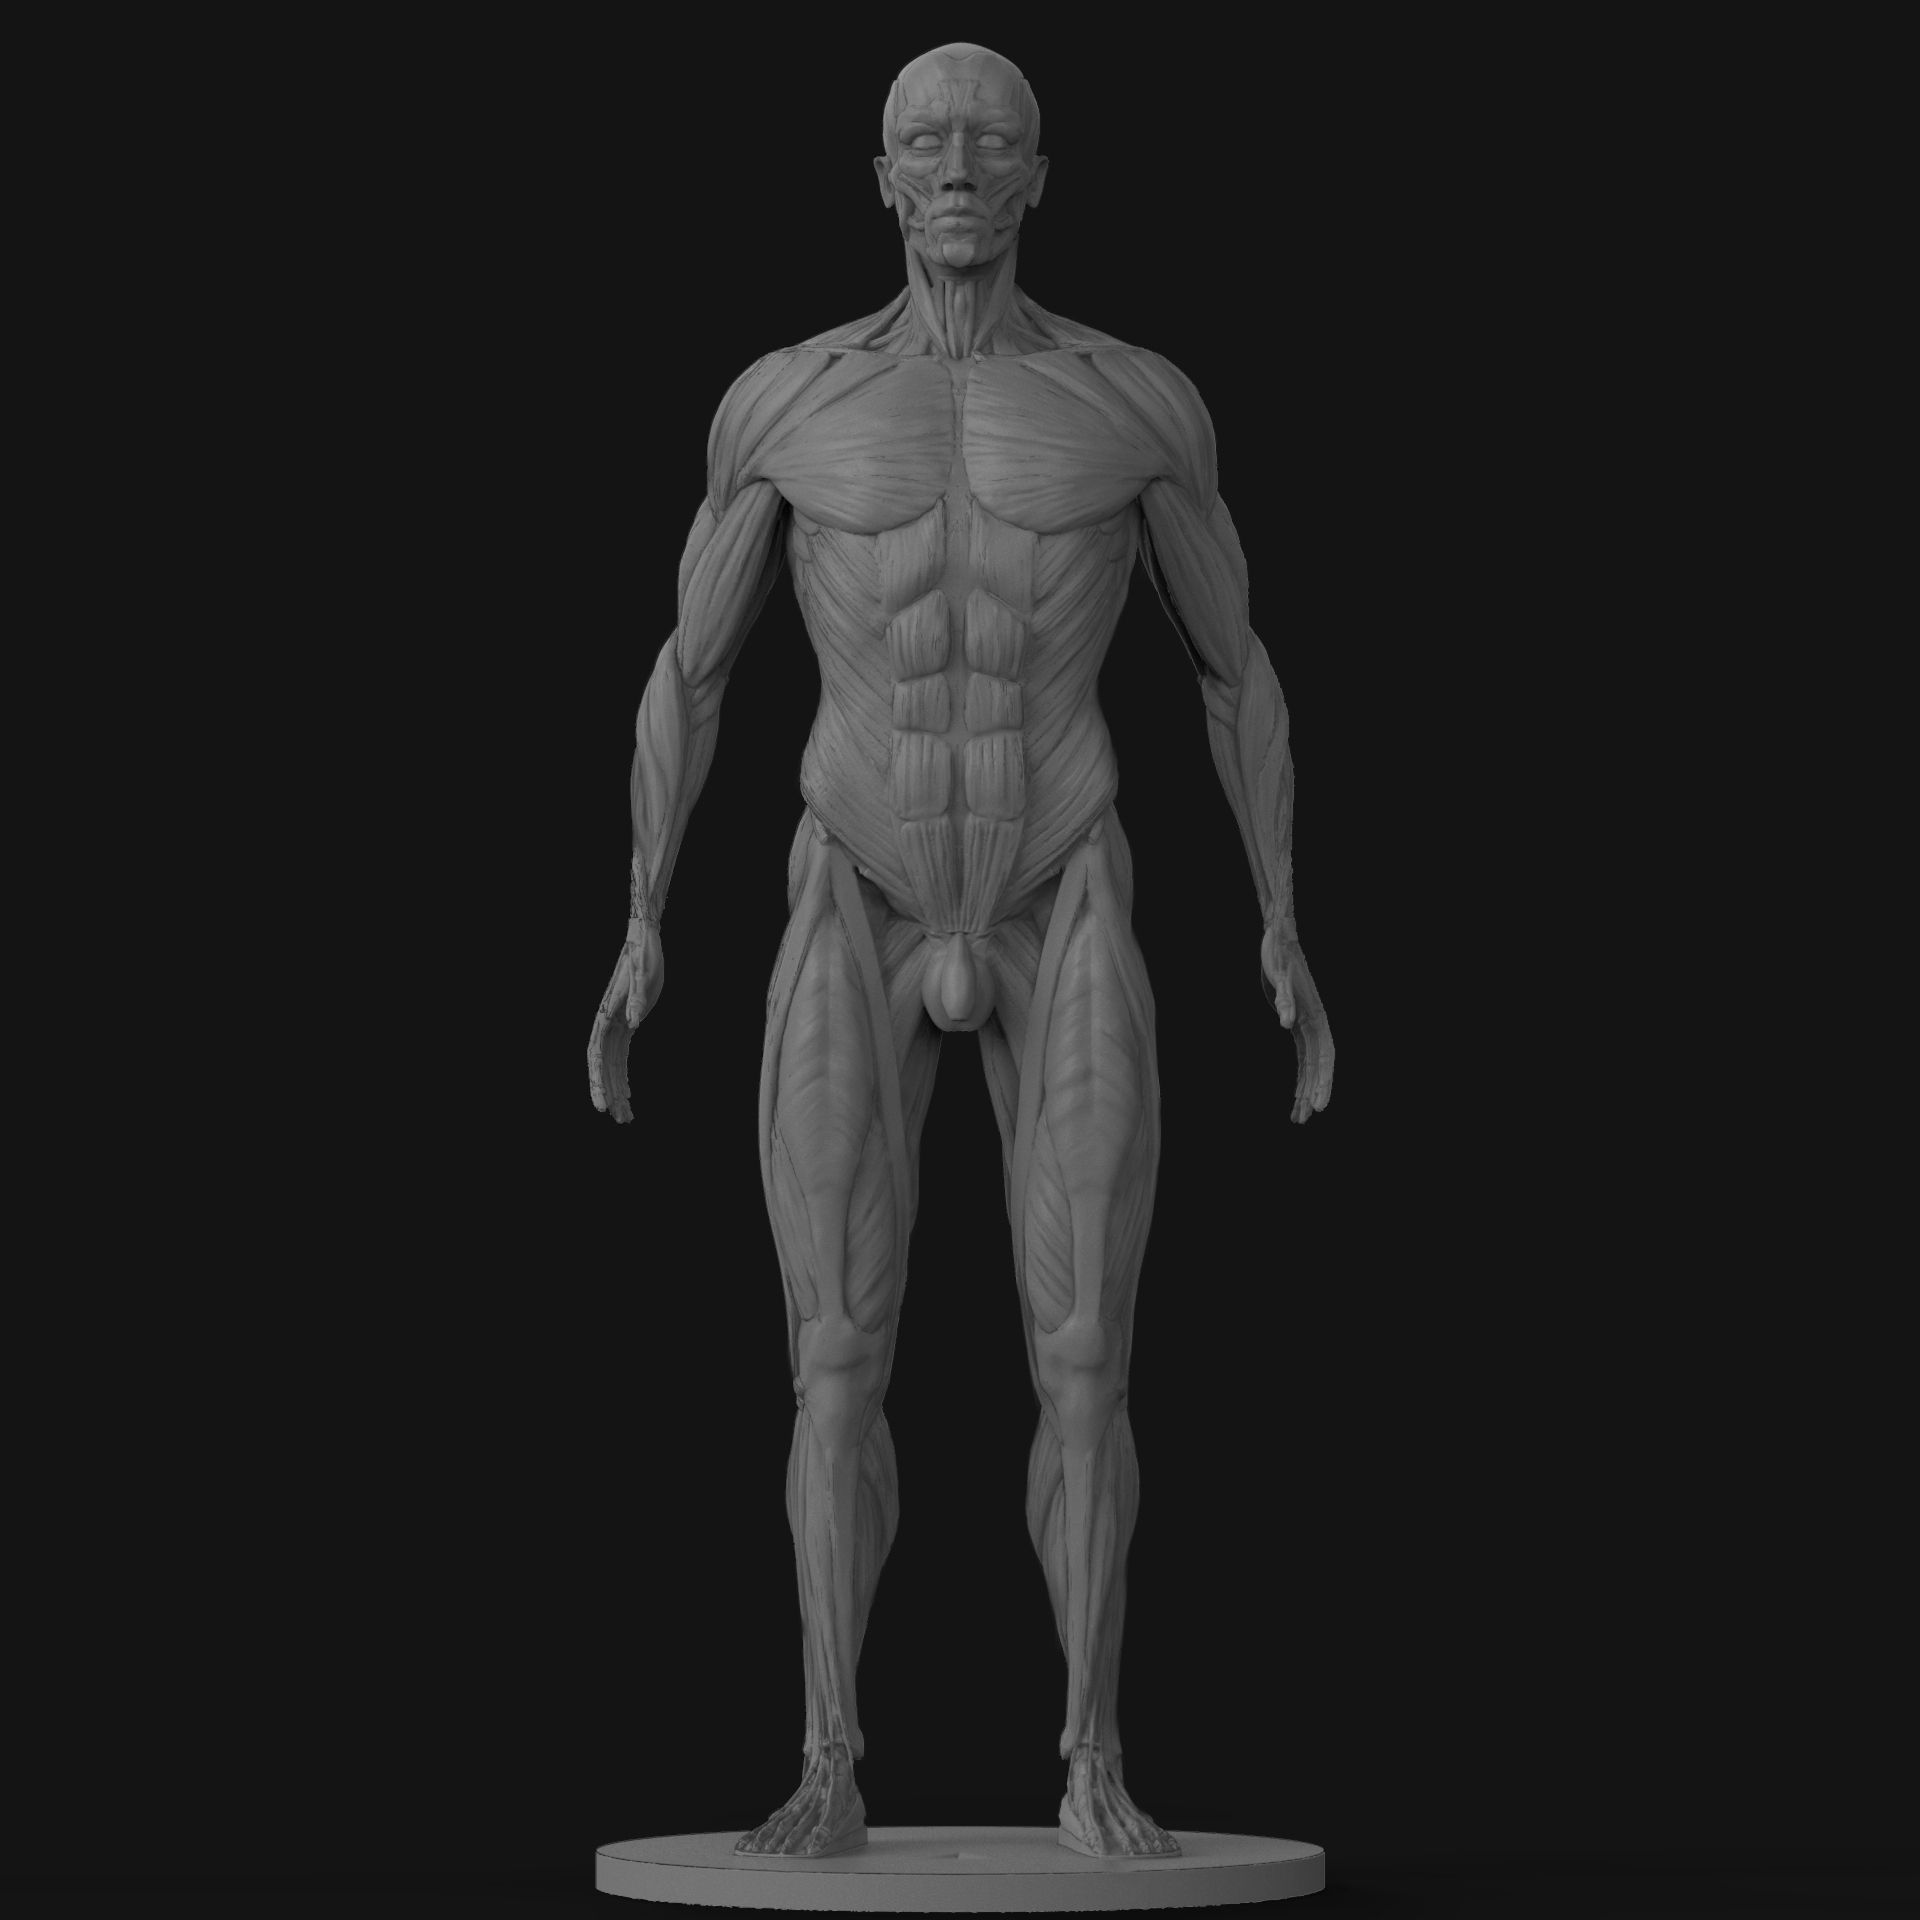 Amazing Male Anatomy Reference Composition - Human Anatomy Images ...